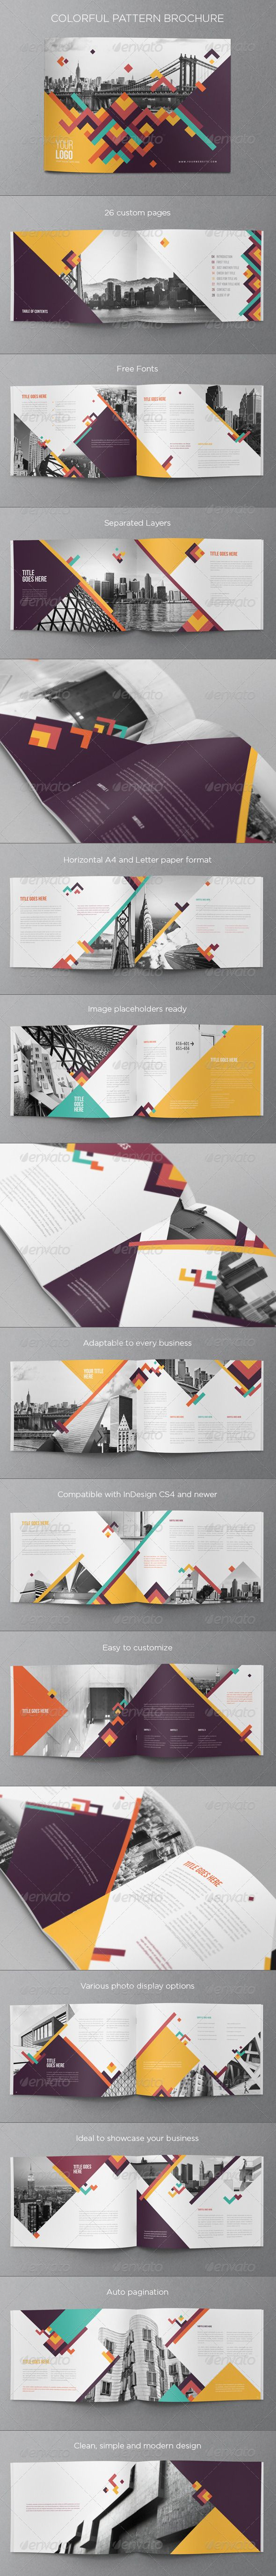 Colorful Pattern Brochure - Brochures Print Templates